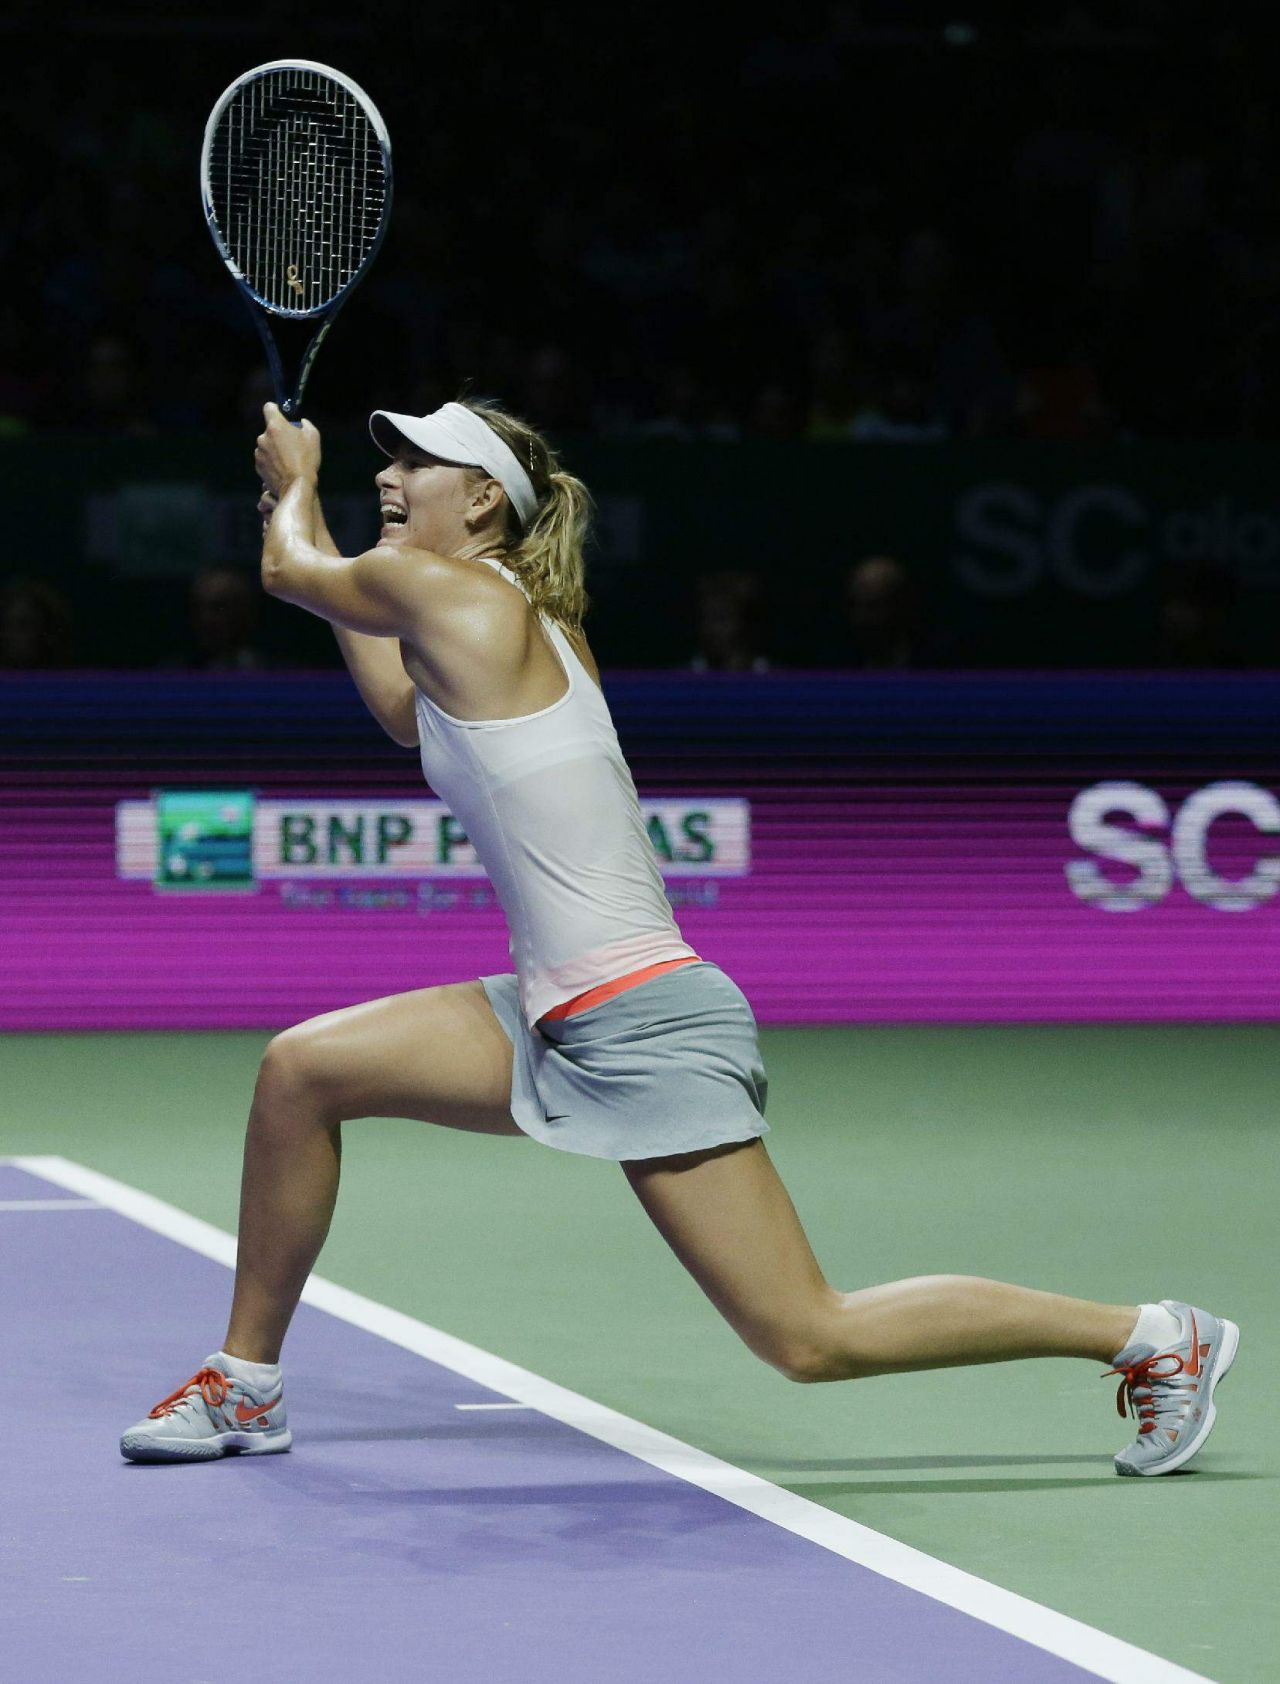 Maria Sharapova – 2014 WTA Finals in Singapore (vs Agnieszka Radwanska)